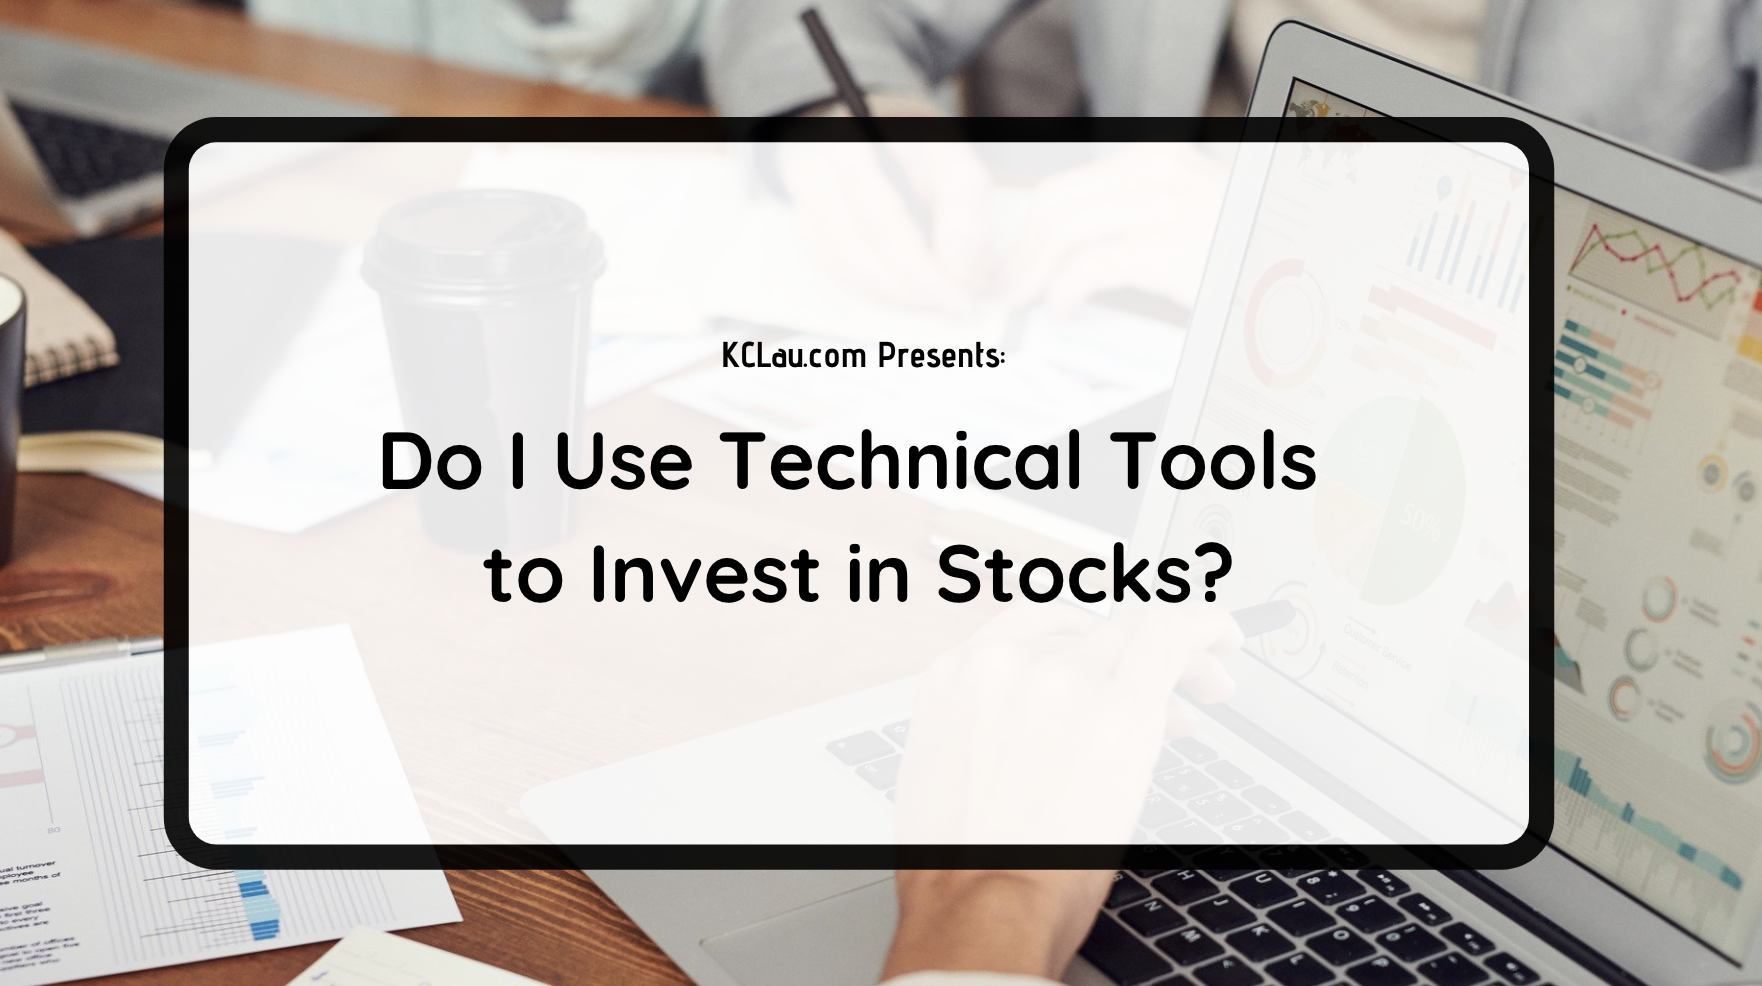 Do I Use Technical Tools to Invest in Stocks?